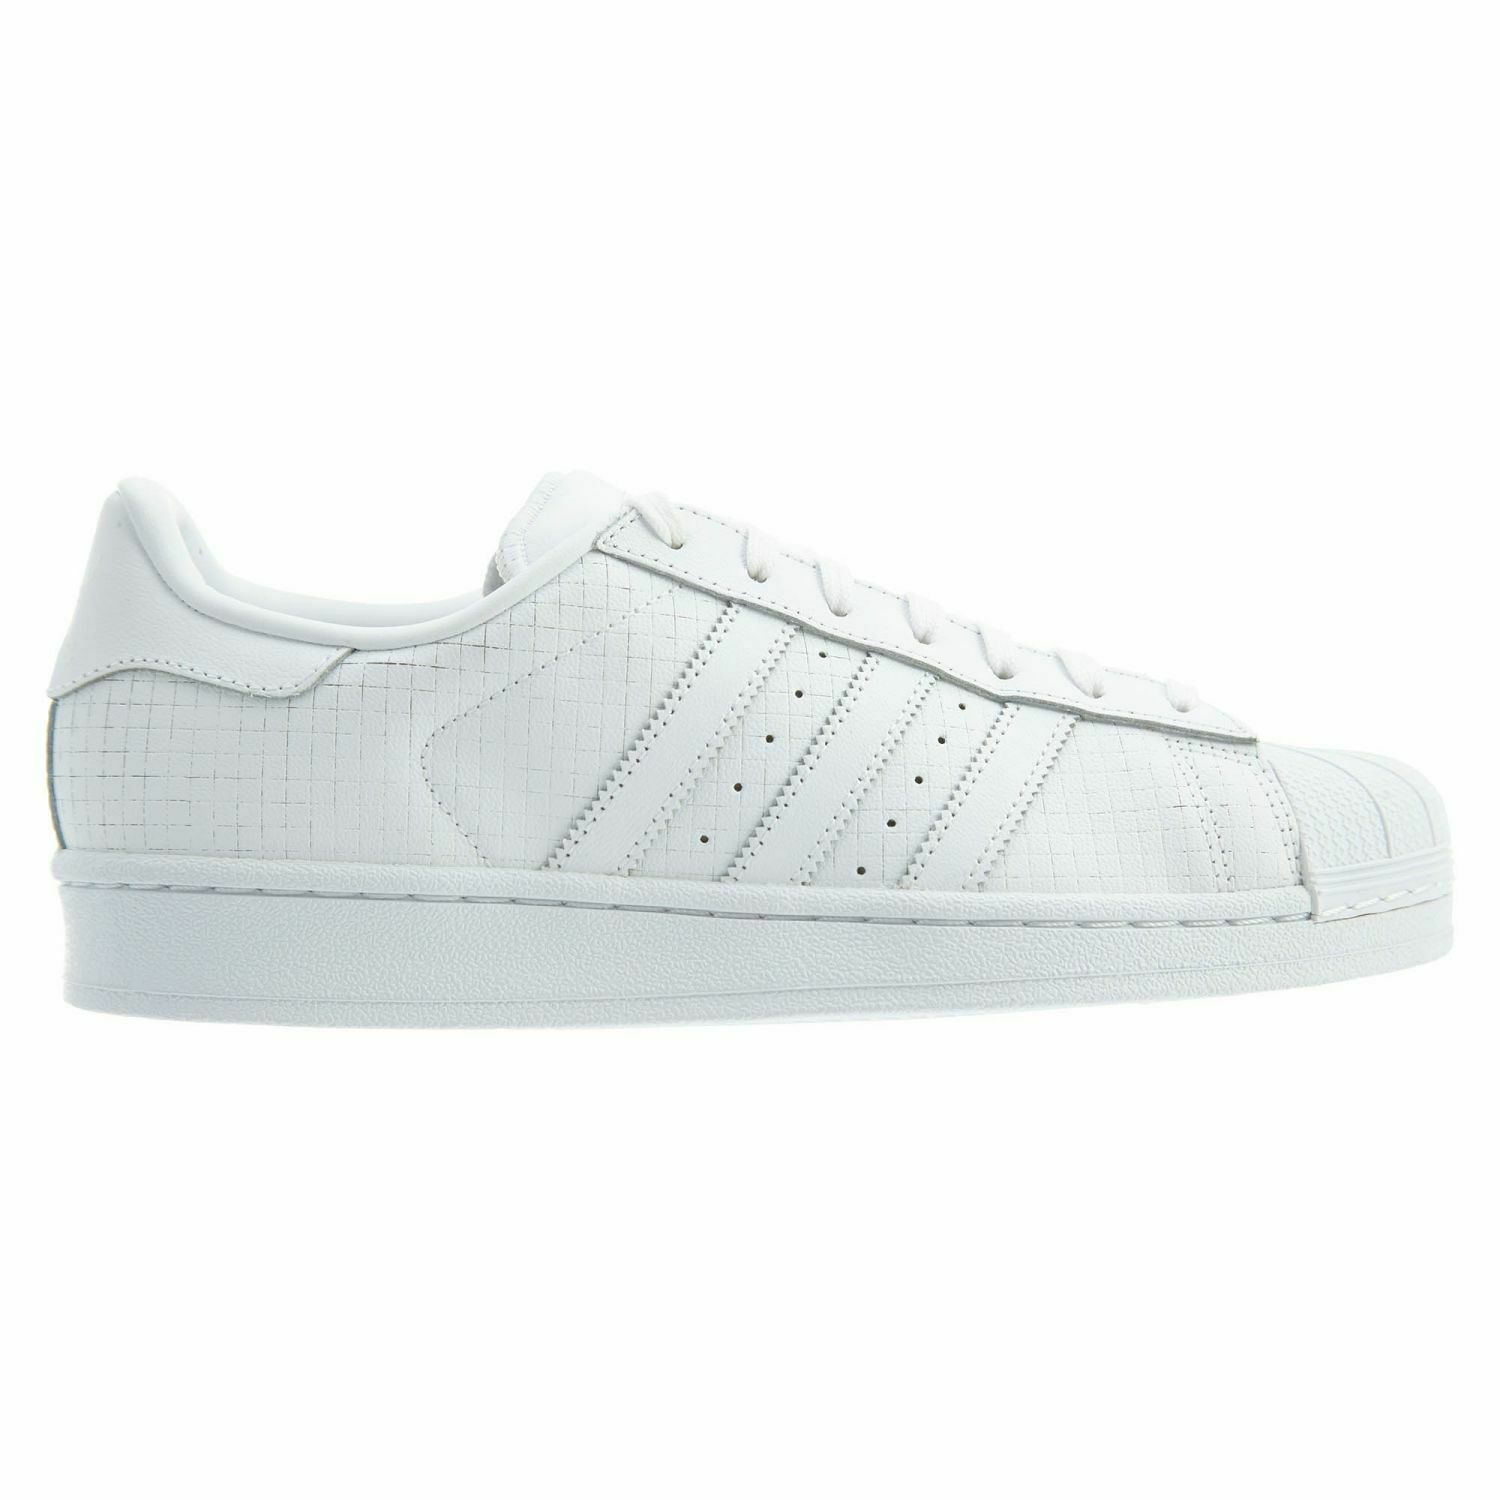 Adidas Superstar Mens AQ8334 White Grid Lines Leather Shell Toe shoes Size 7.5